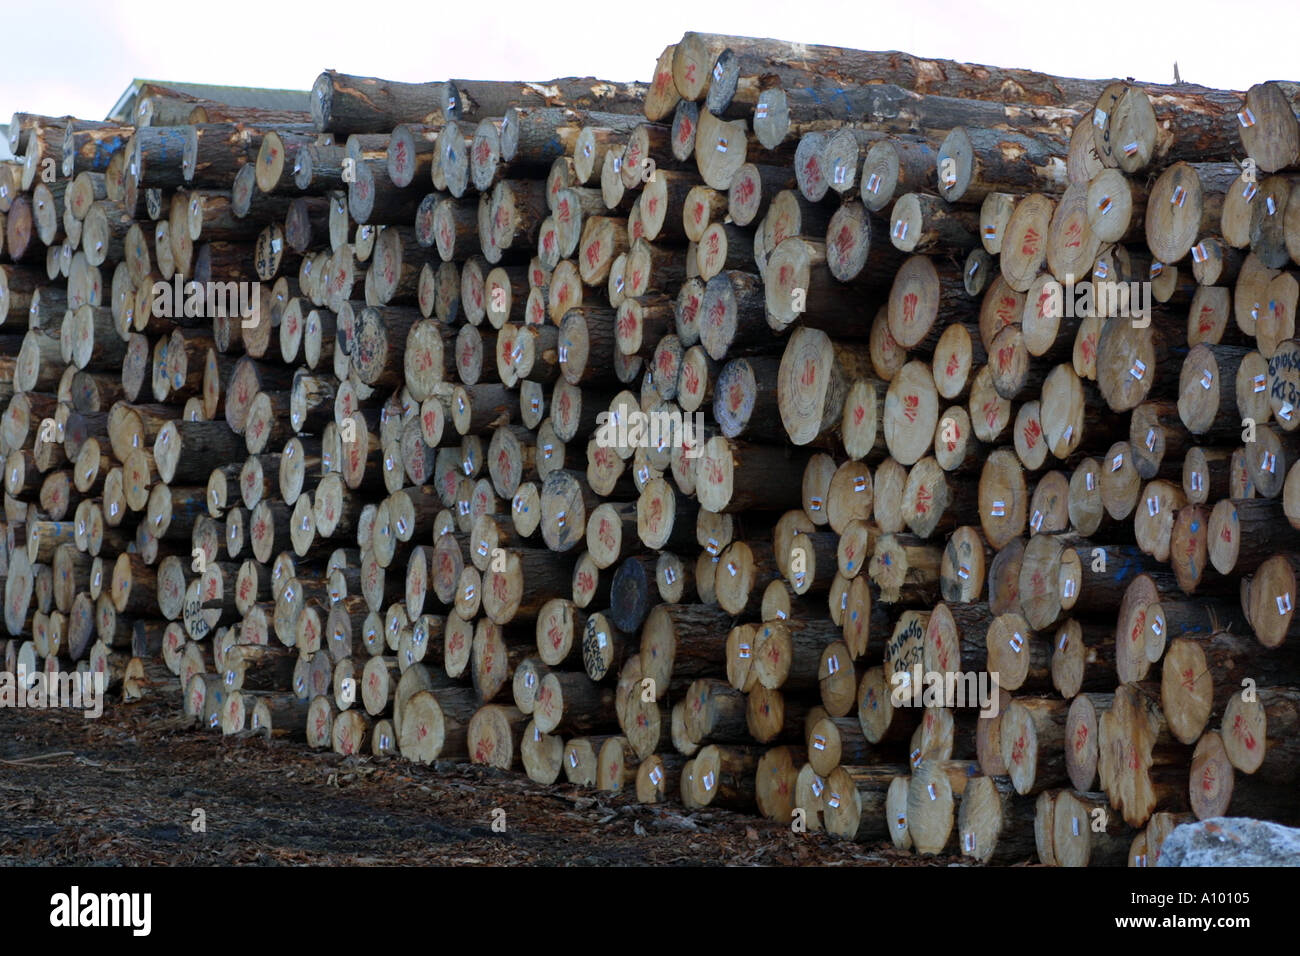 Timber exports from New Zealand. - Stock Image